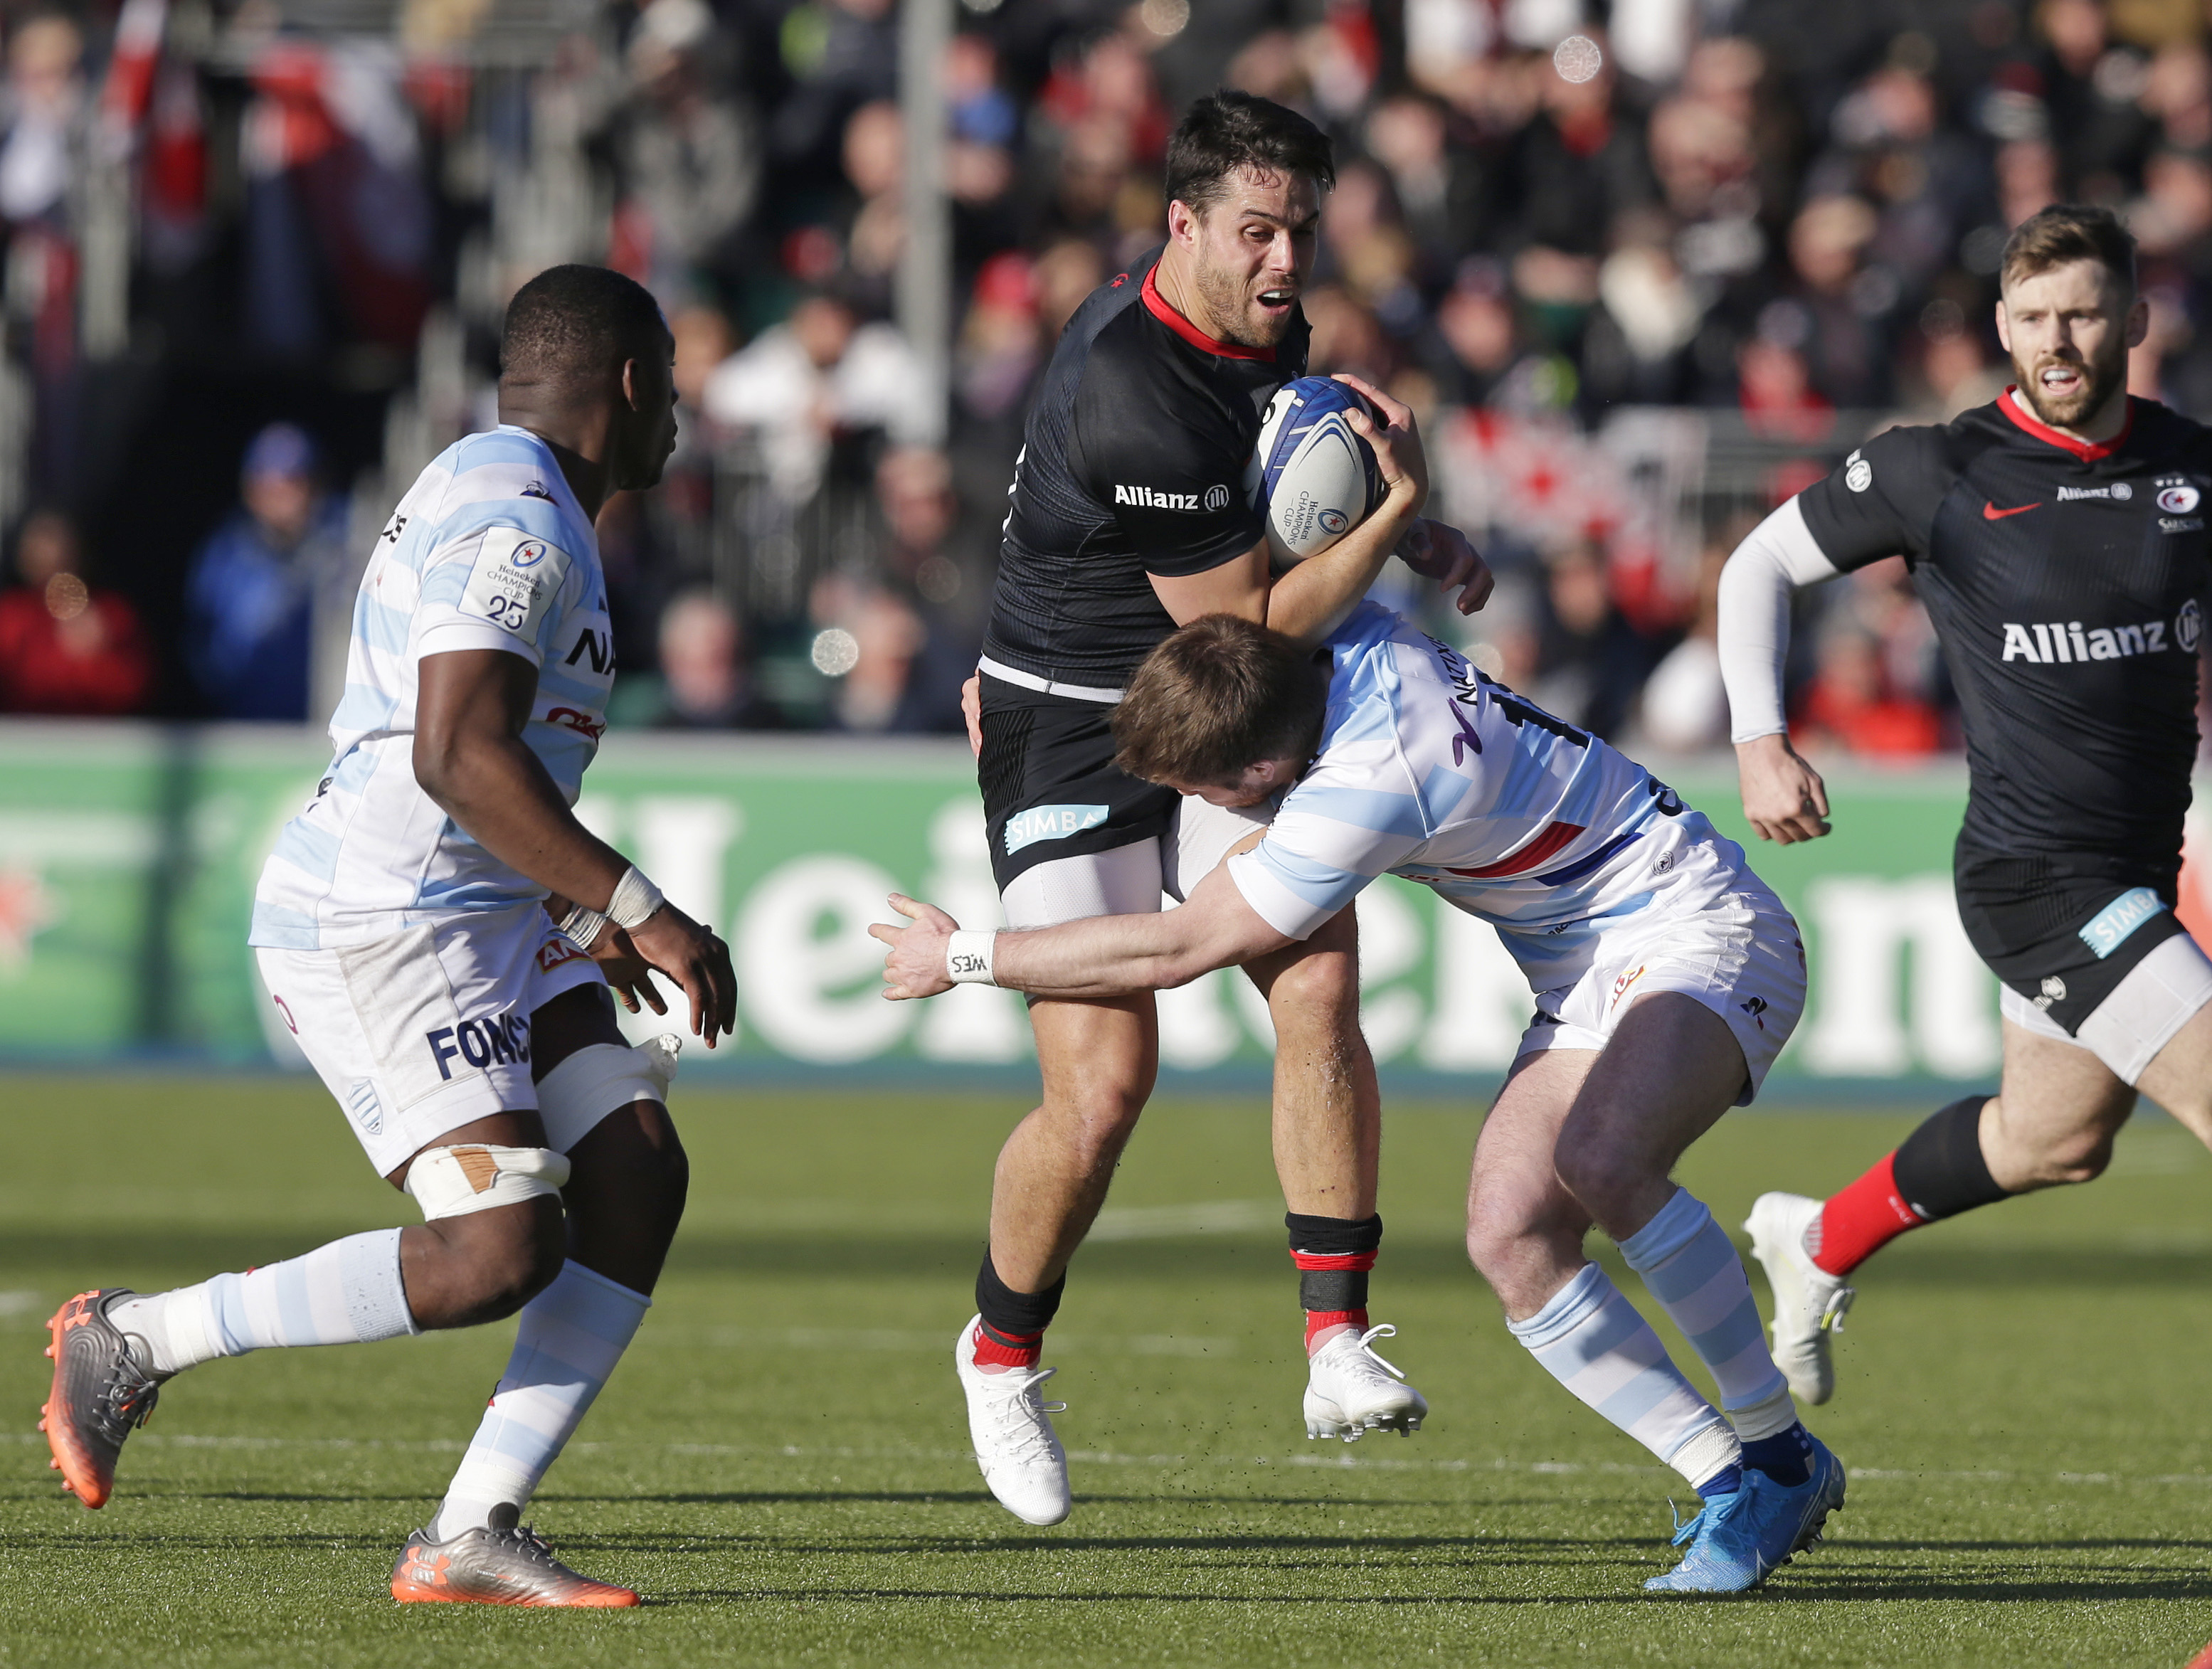 Racing v Saracens live stream – a Champions Cup semi-final preview